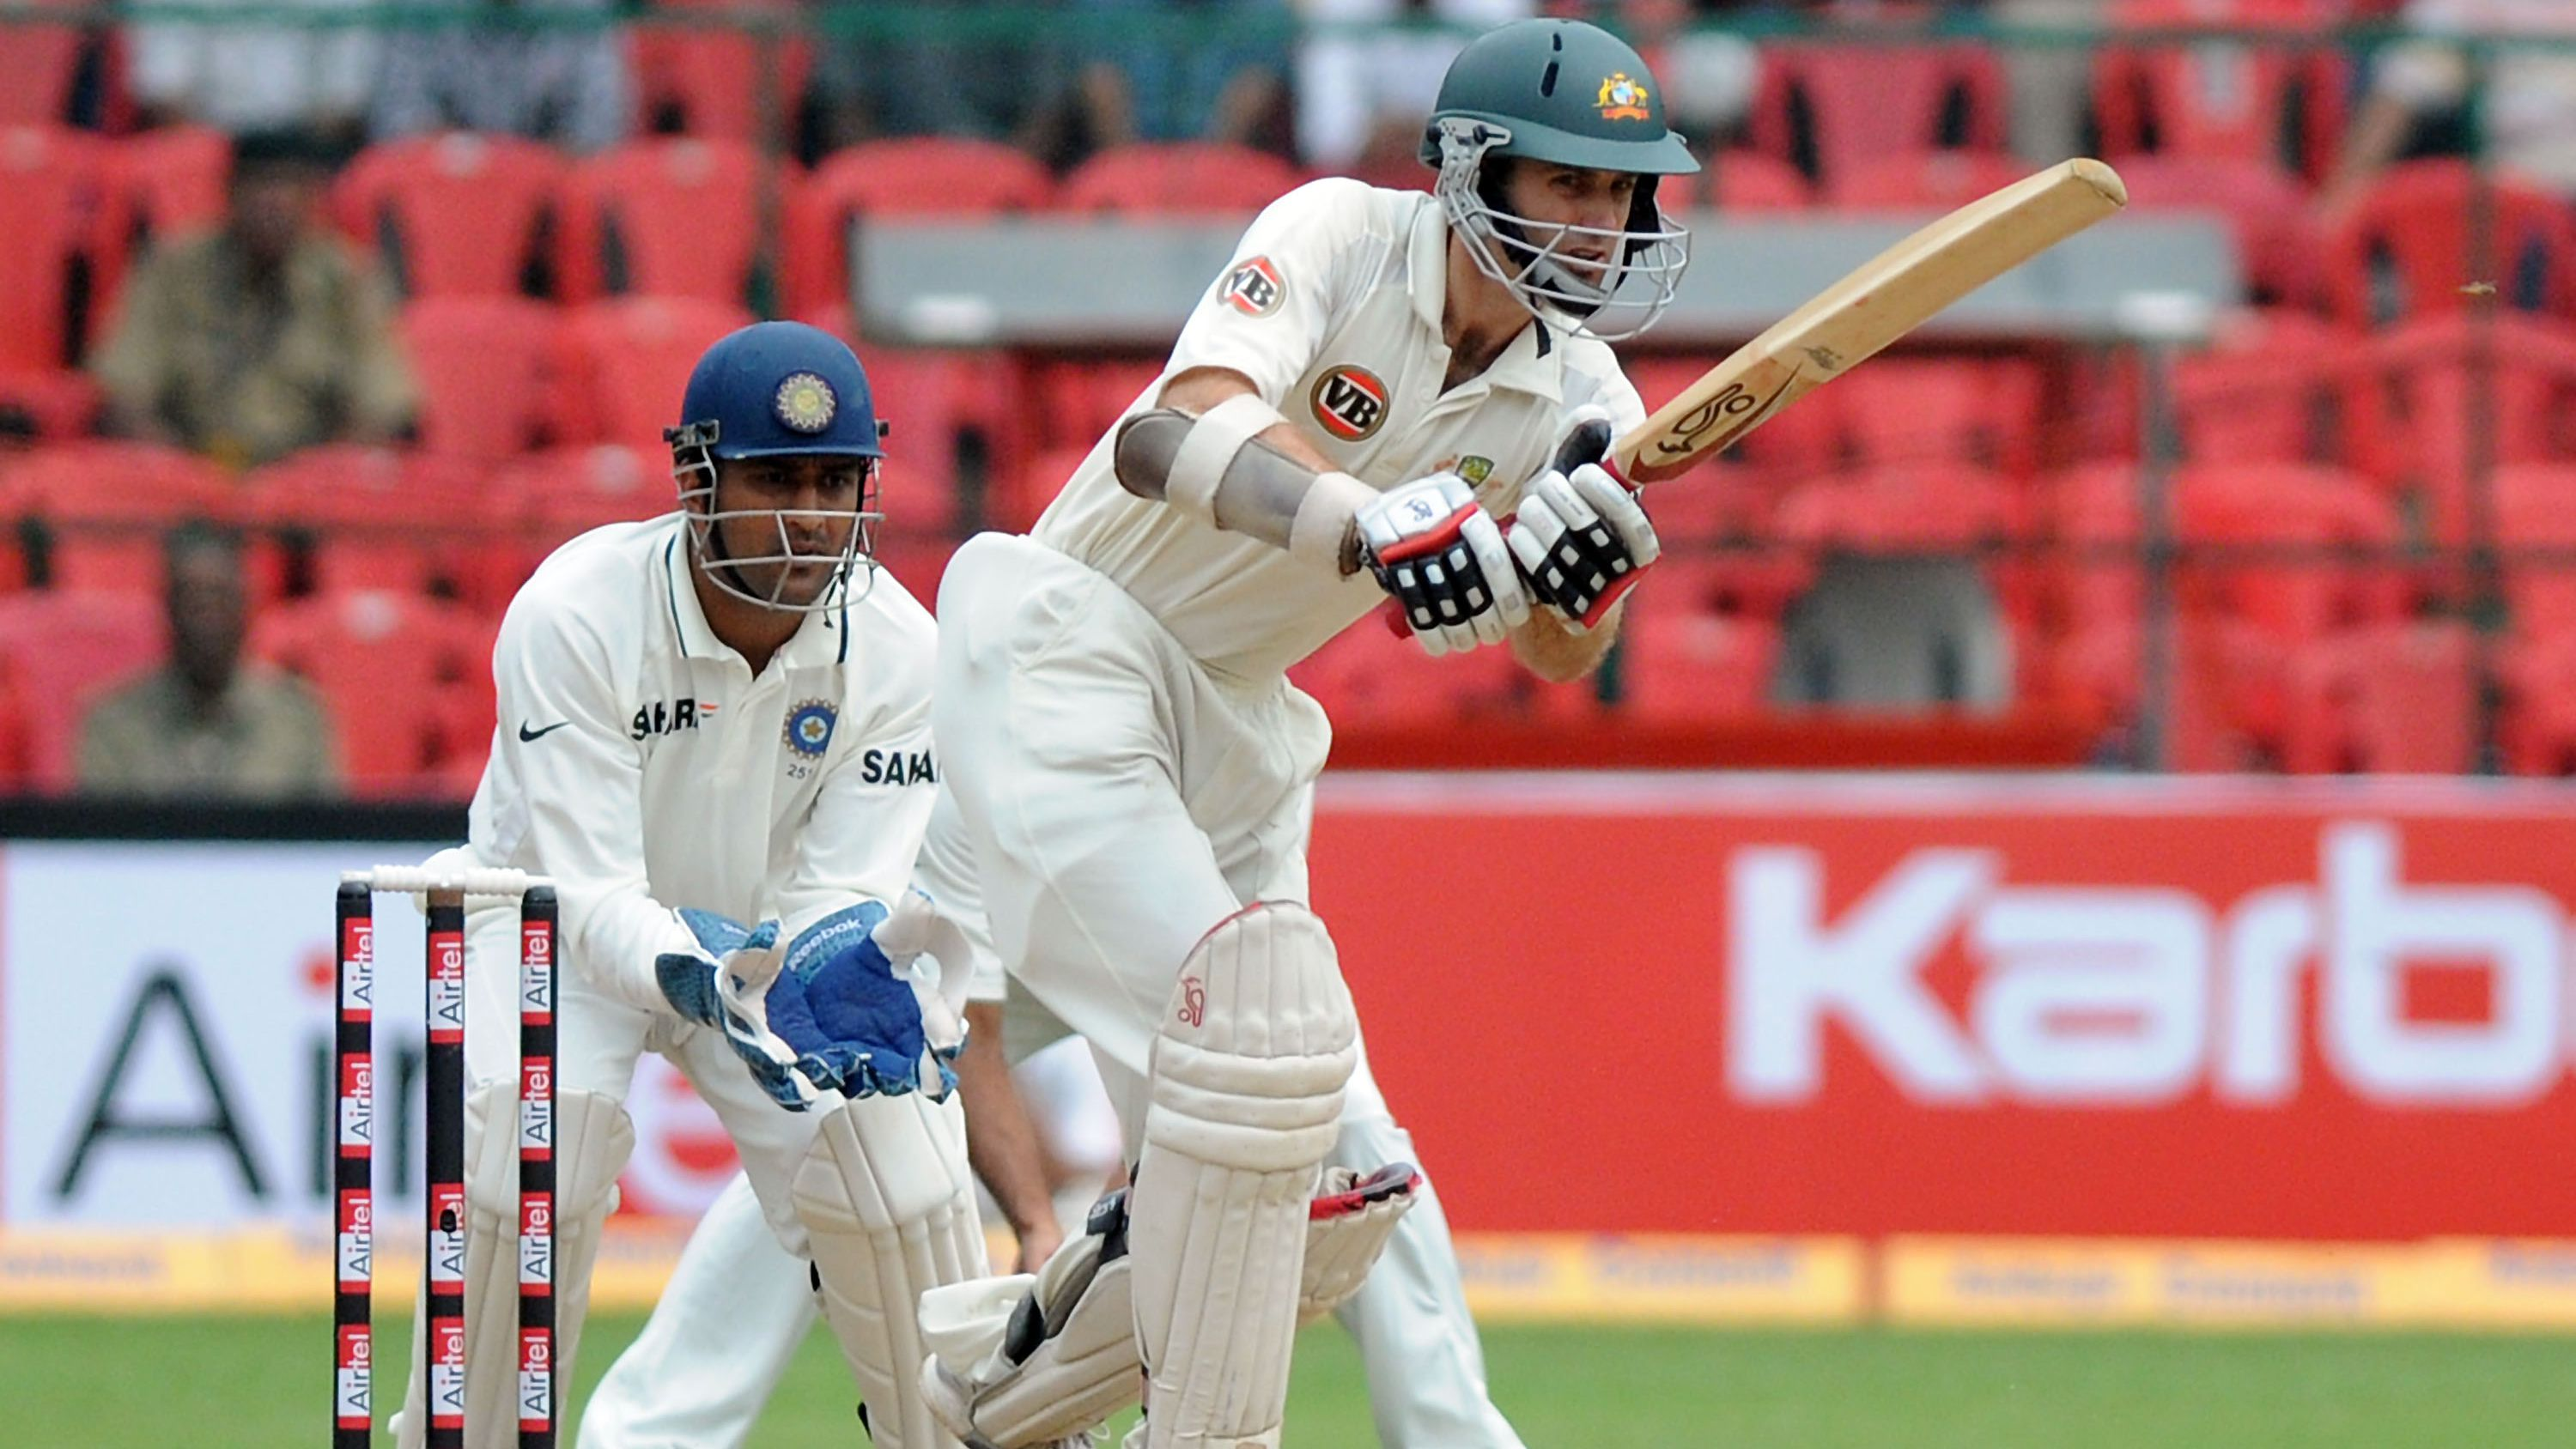 Open with Usman Khawaja and Matthew Wade in the first Test, says Simon Katich